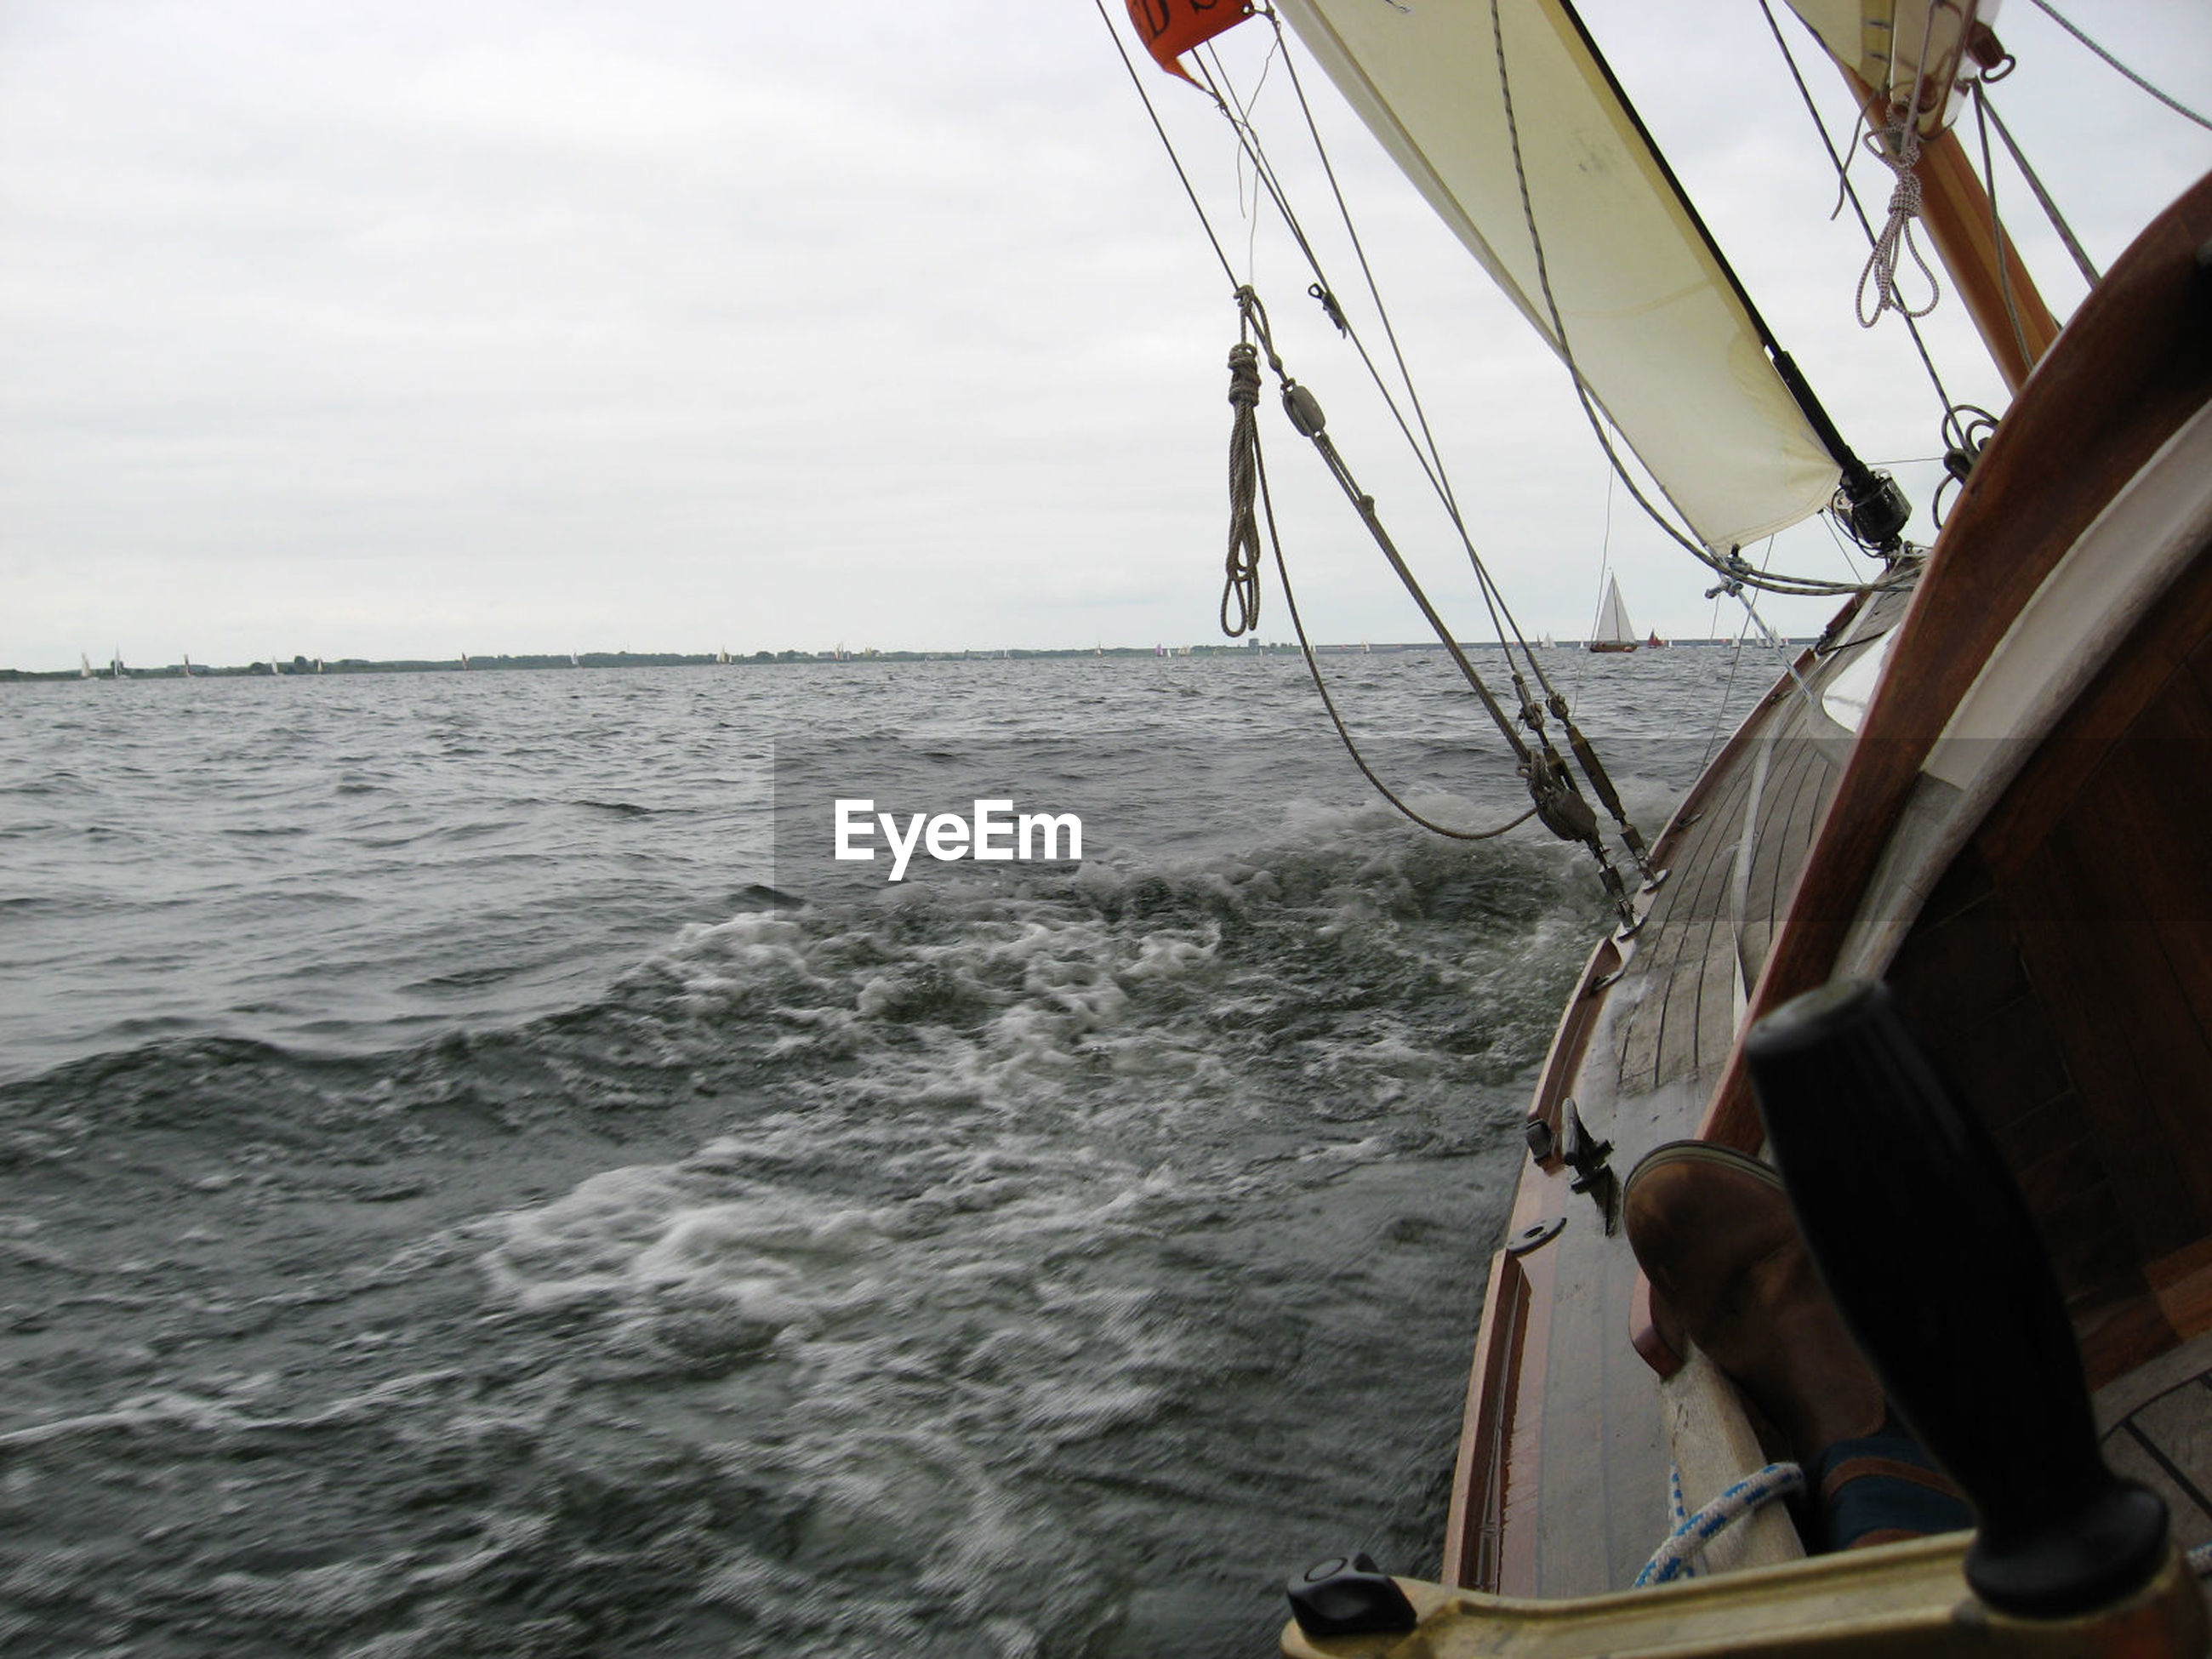 Cropped image of boat sailing in sea